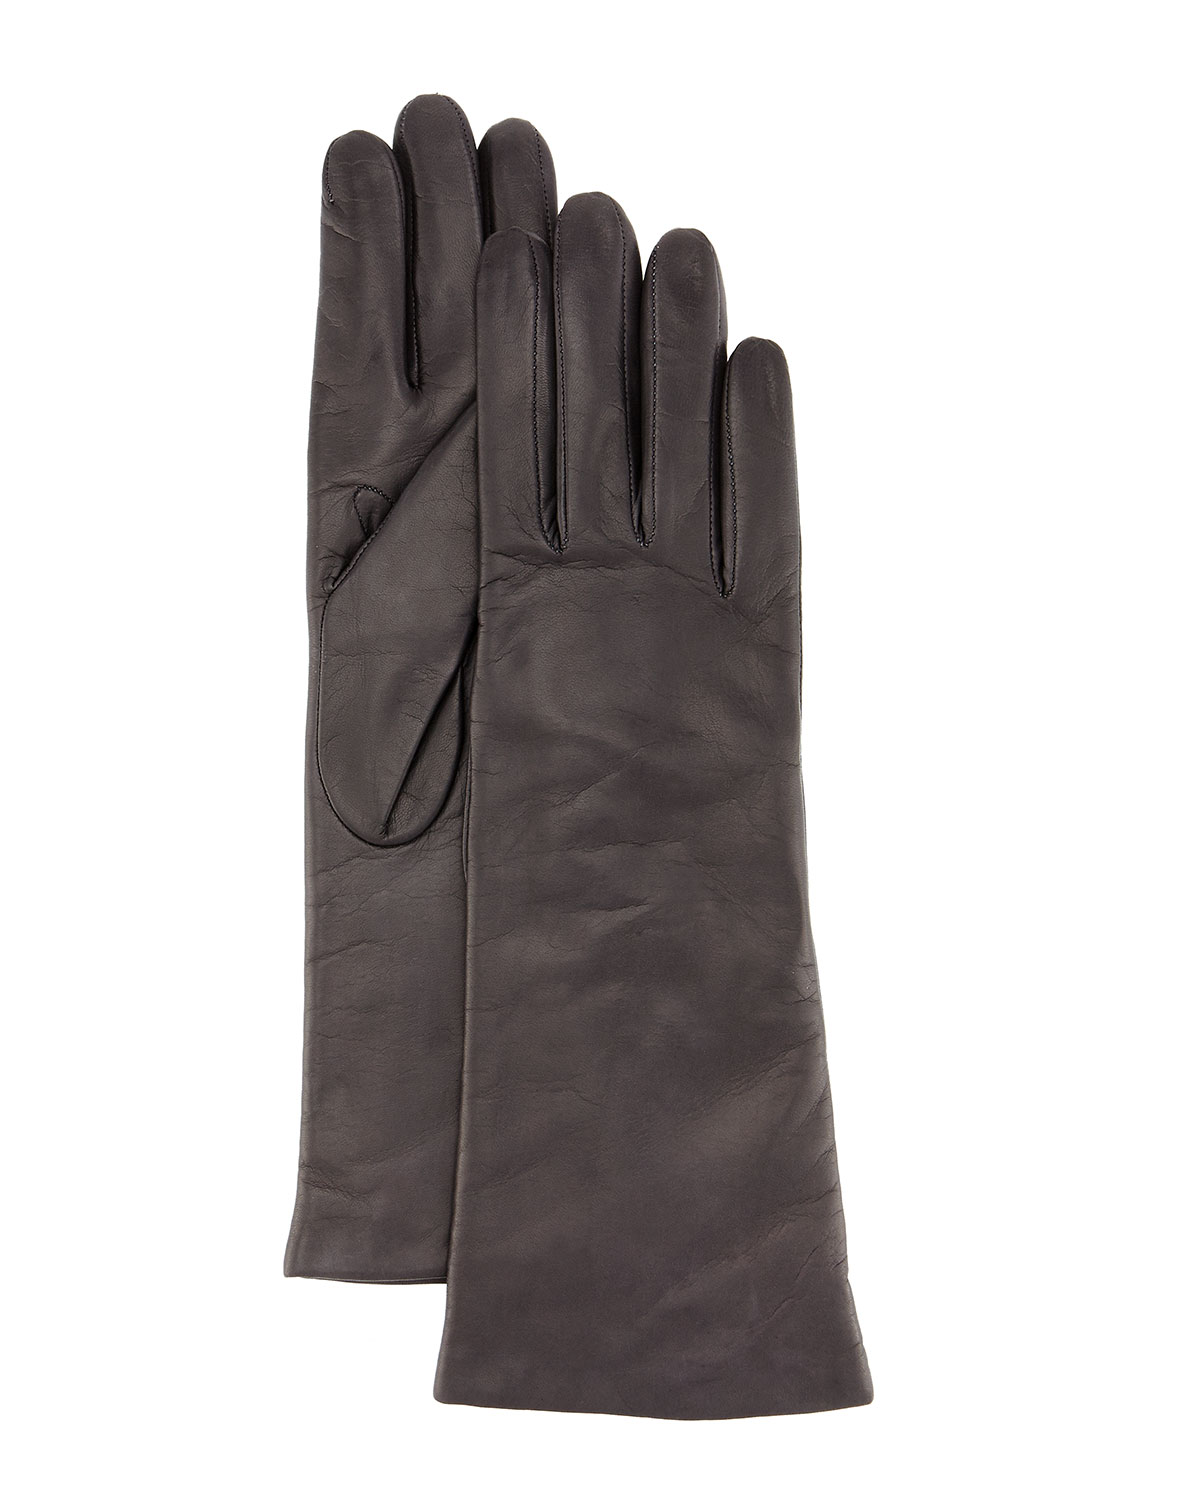 Napa Leather Gloves, Brown